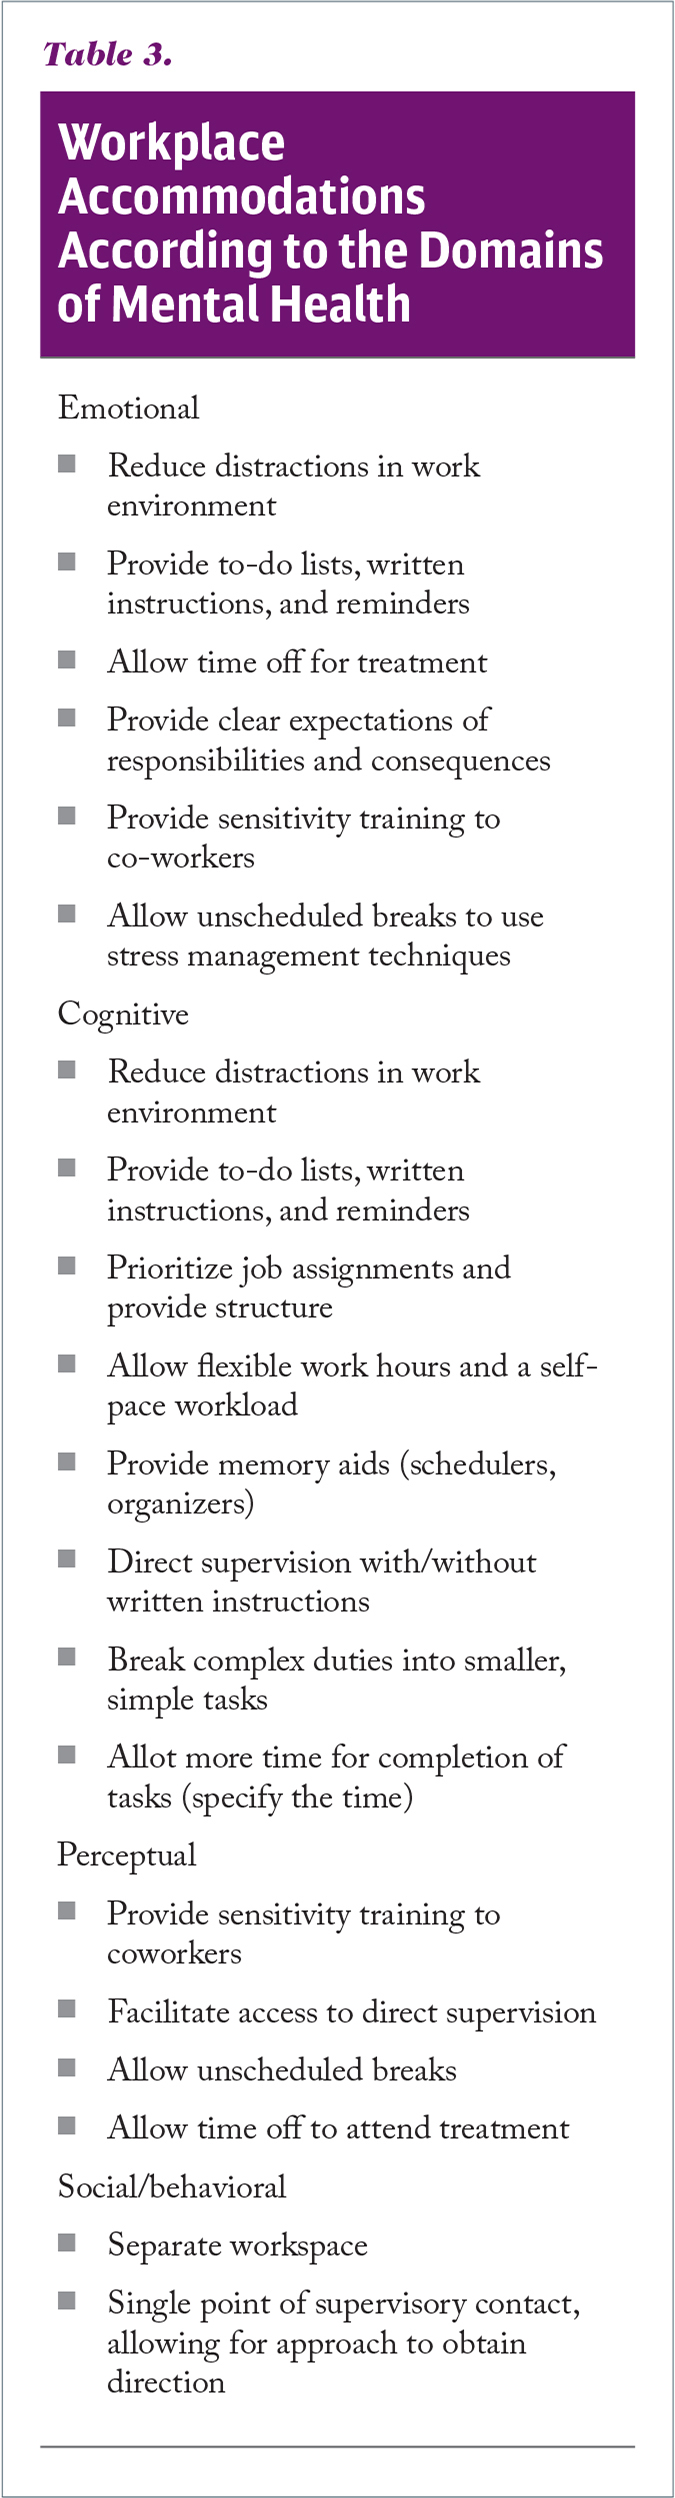 Workplace Accommodations According to the Domains of Mental Health